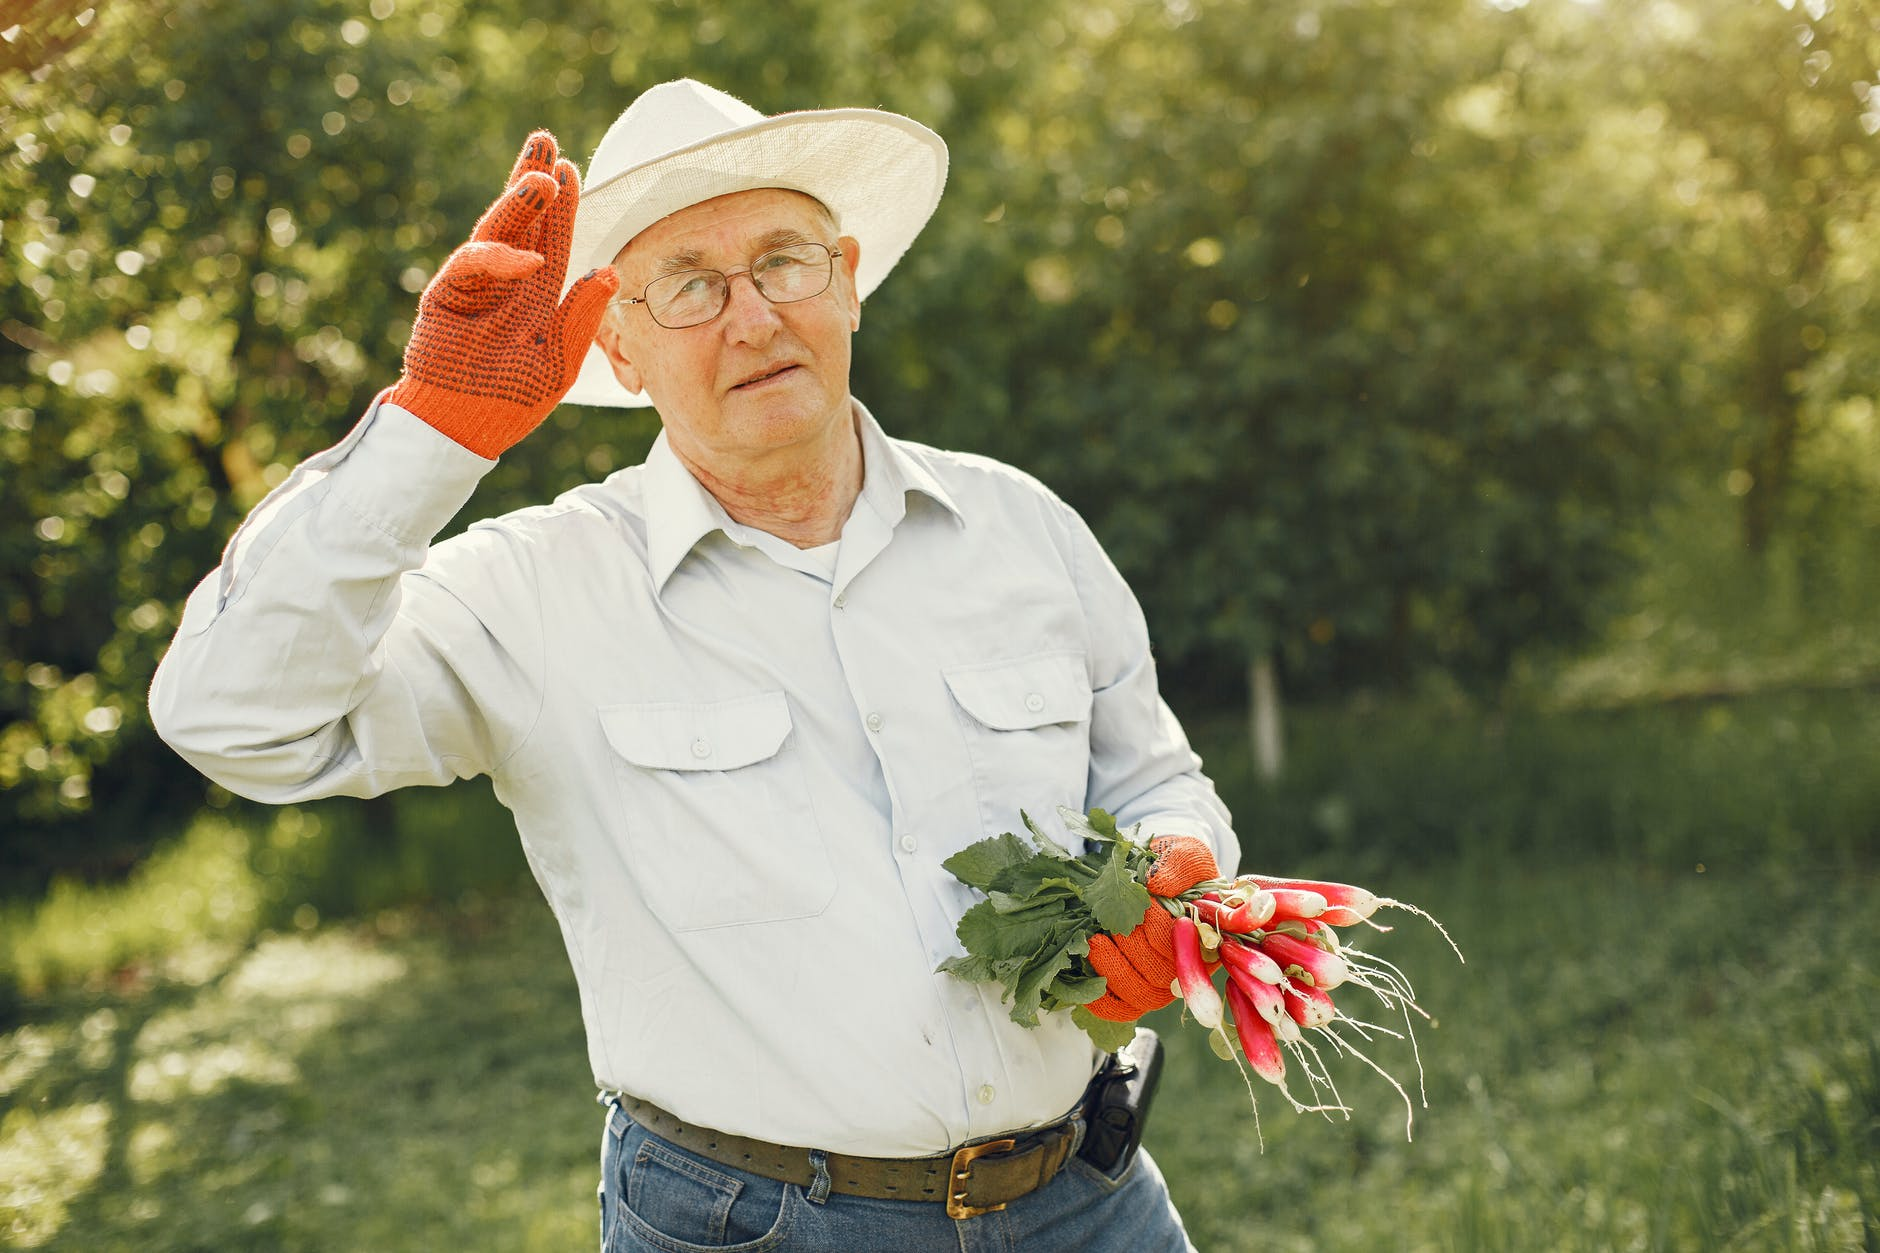 Man in gardening clothes with a handful of radishes | Source: Pexels